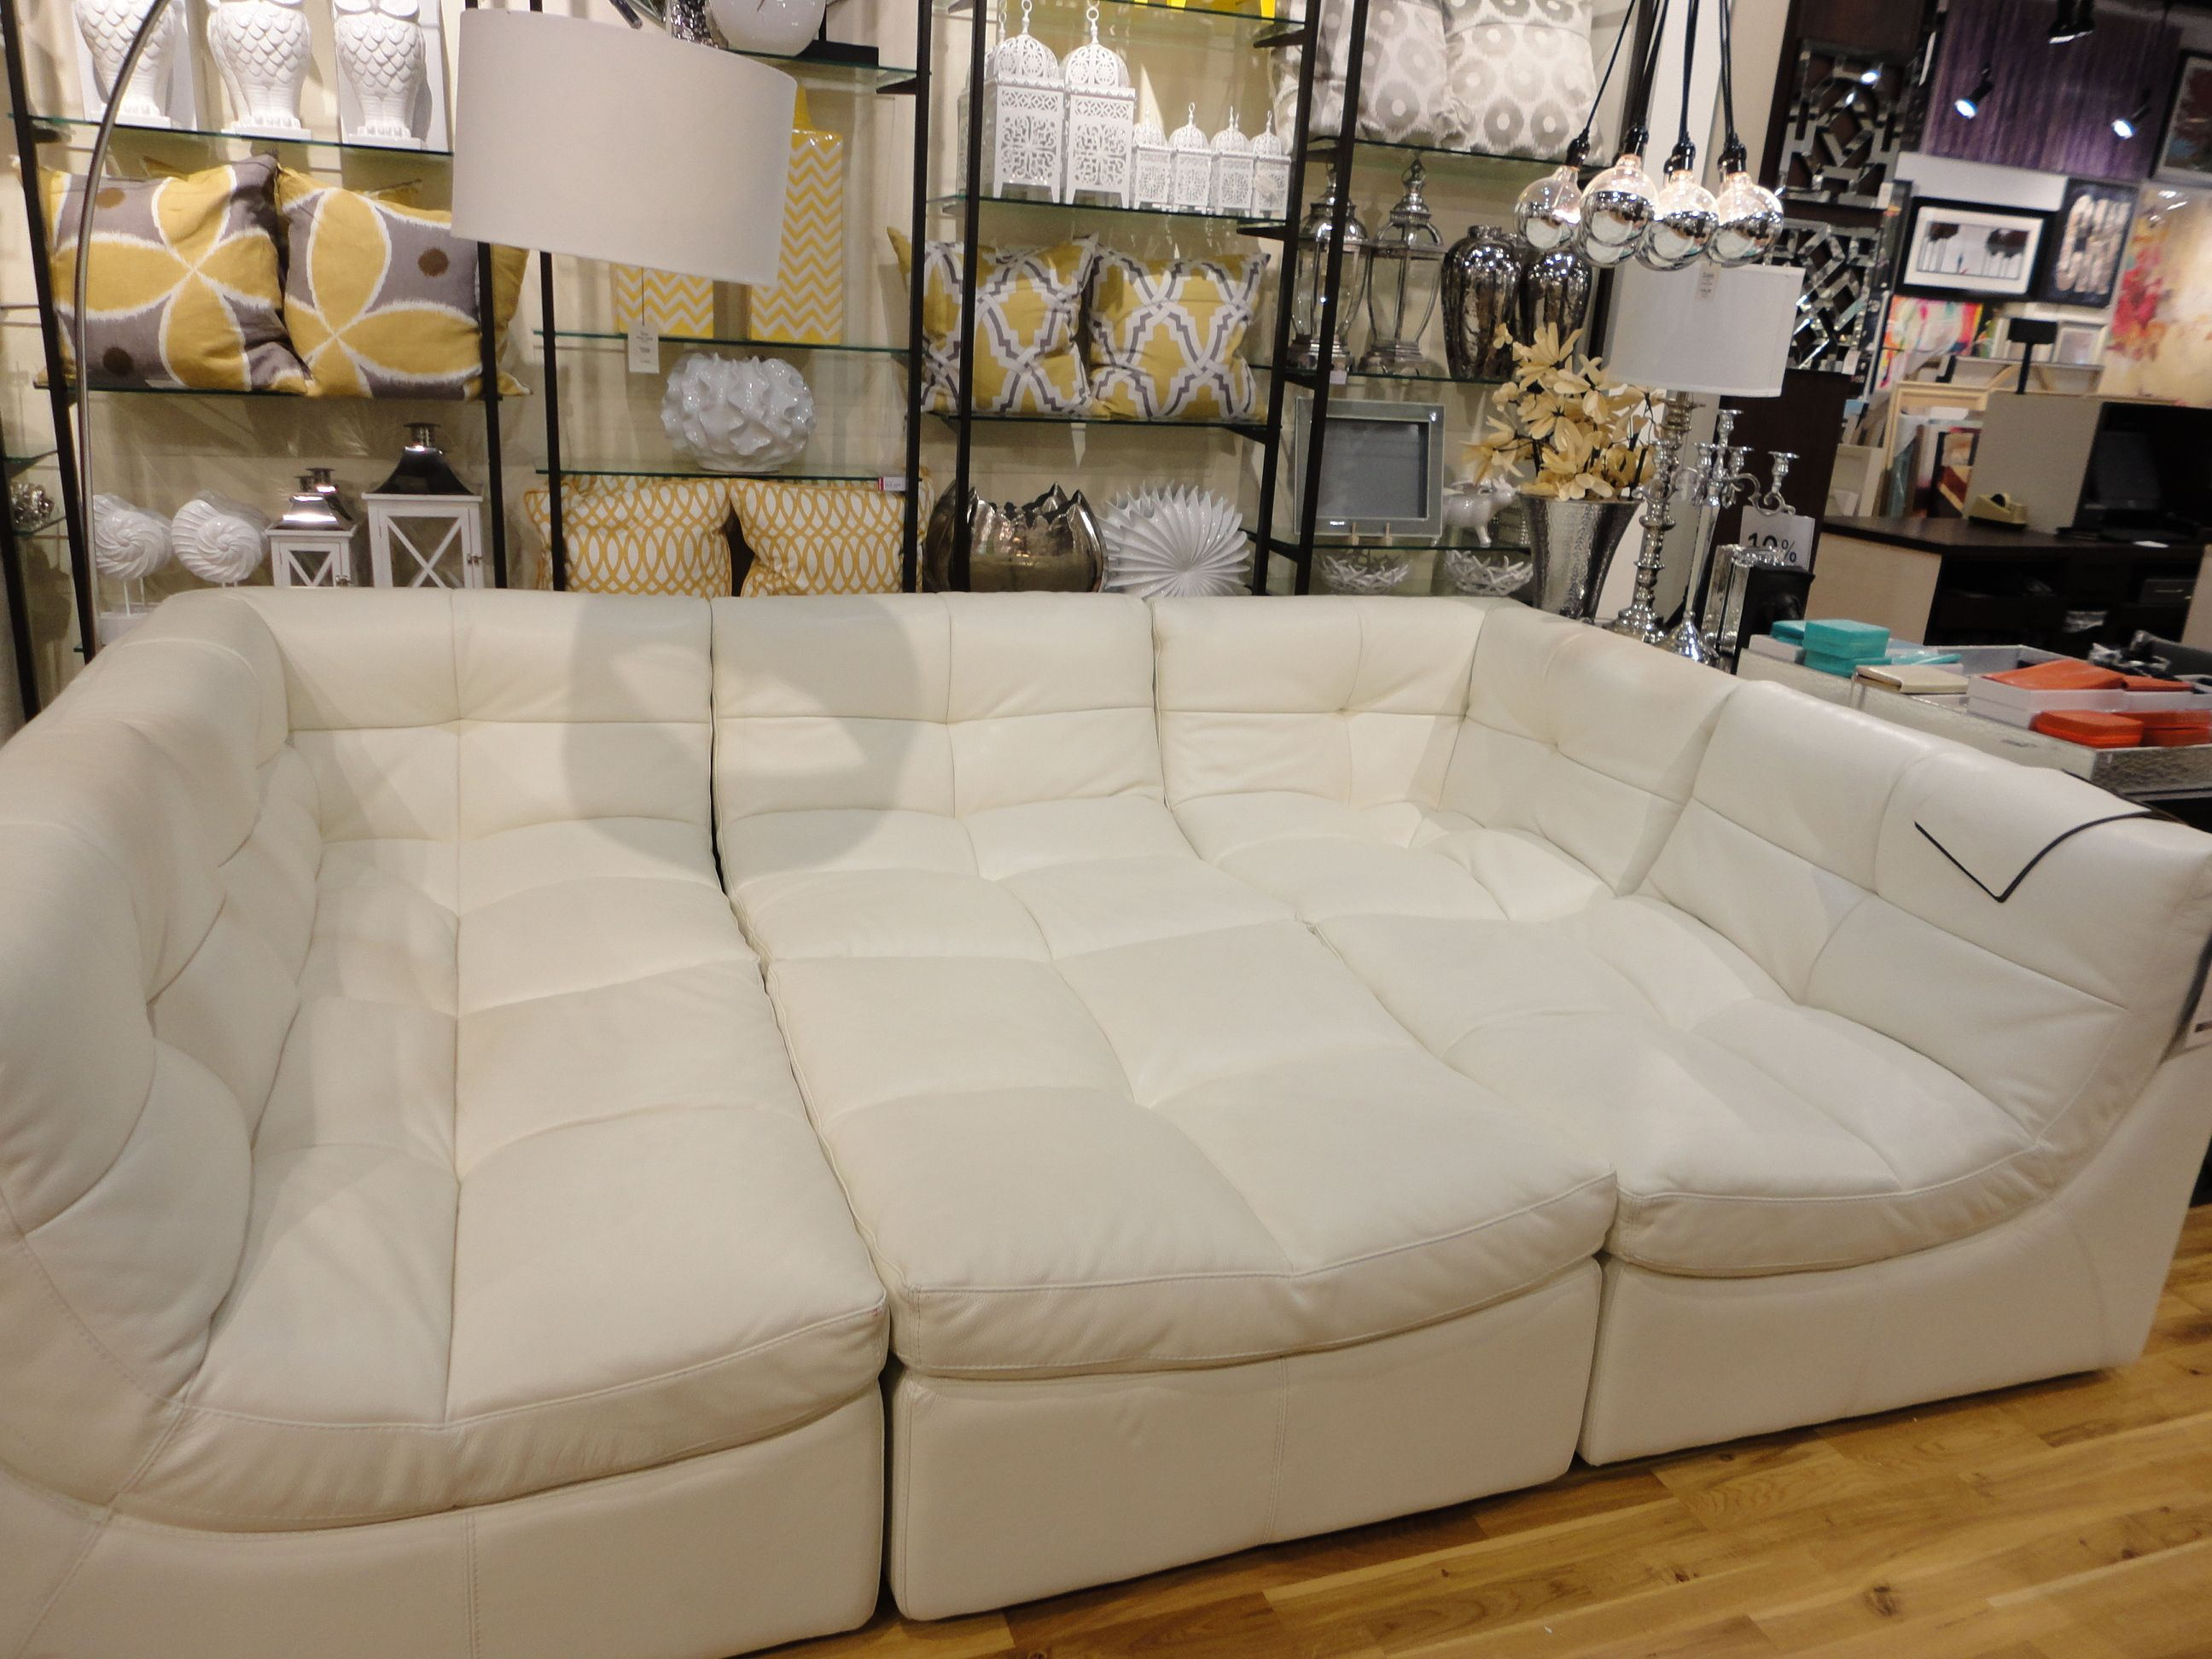 This couch is super cool. Looks like a bed, but those are all small